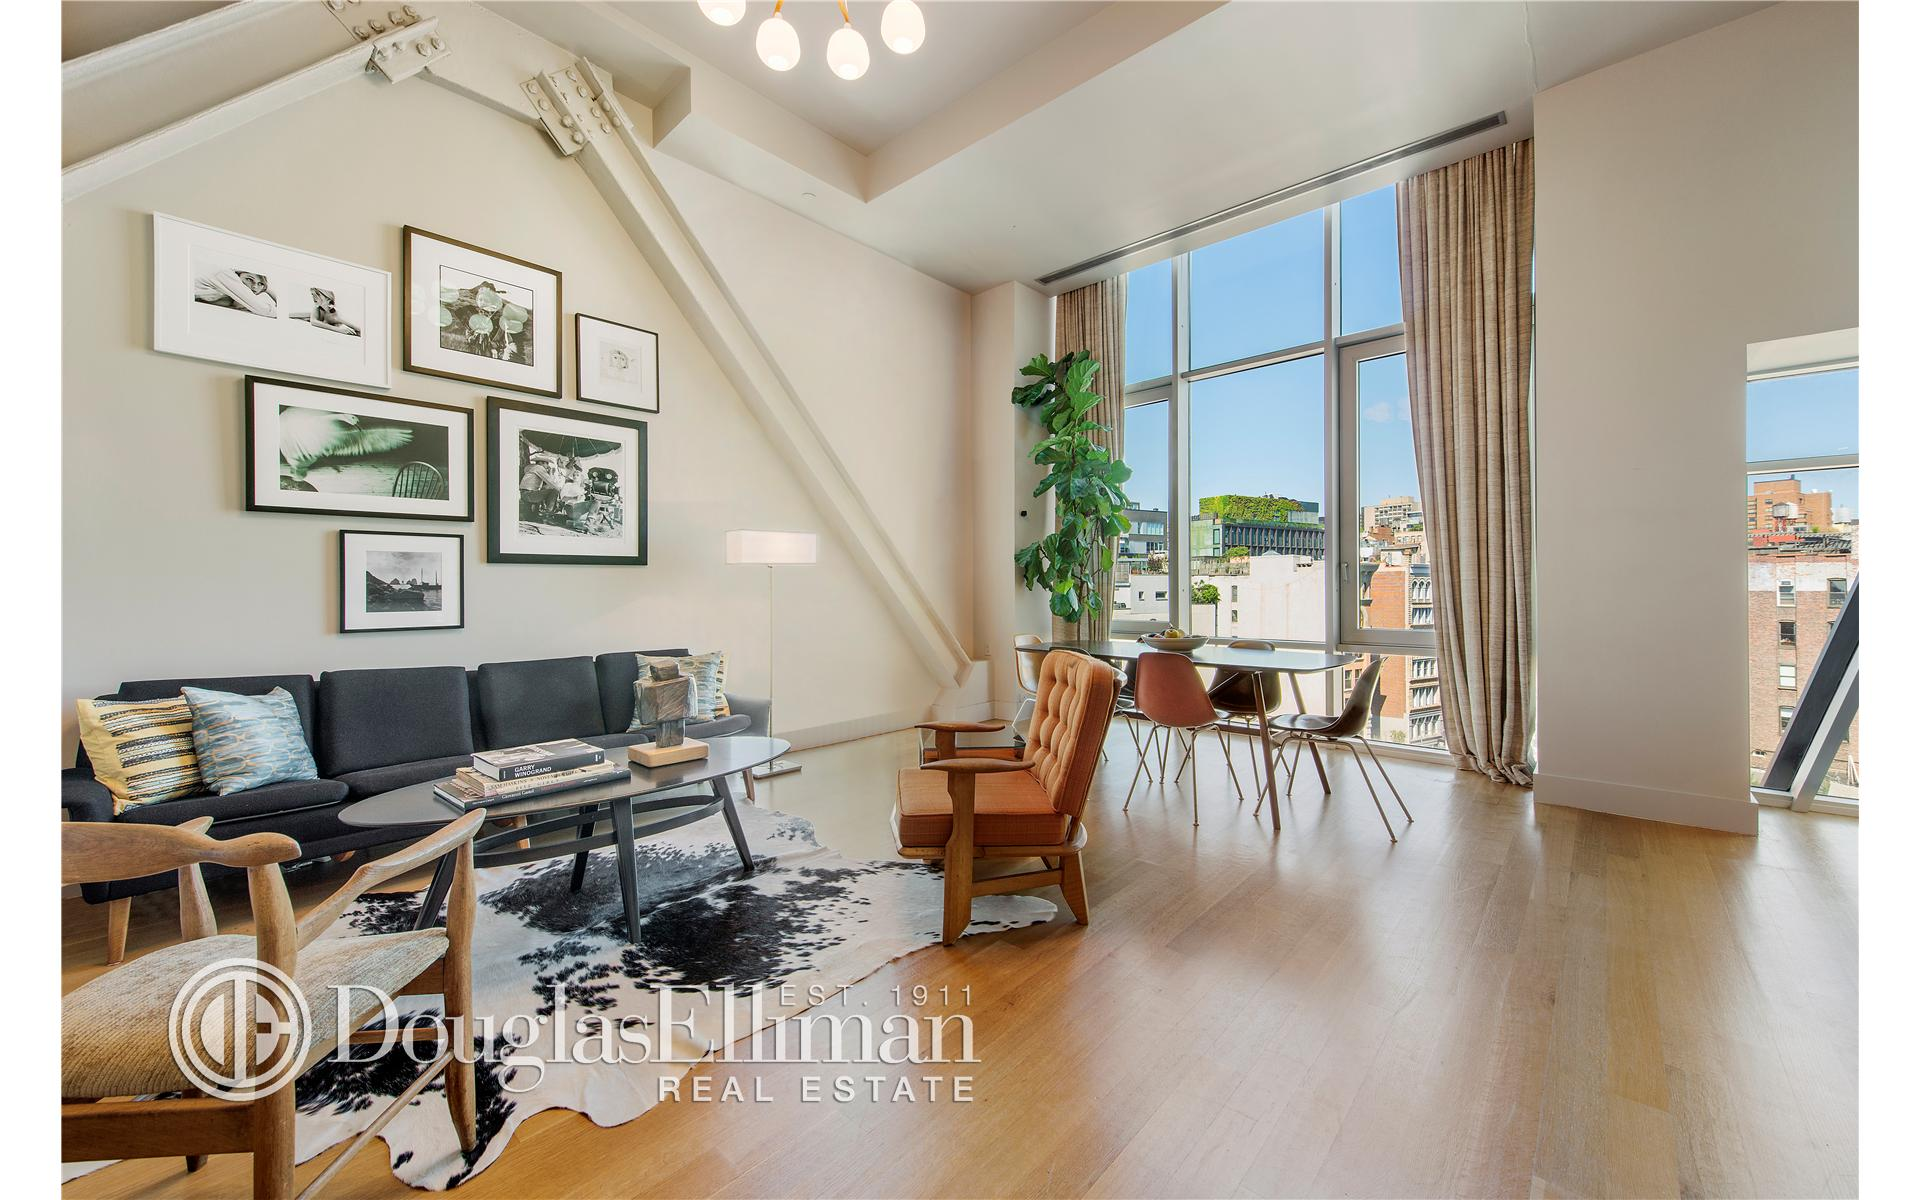 Condominium for Sale at Scarano, Scarano, 52 East 4th Street New York, New York 10003 United States